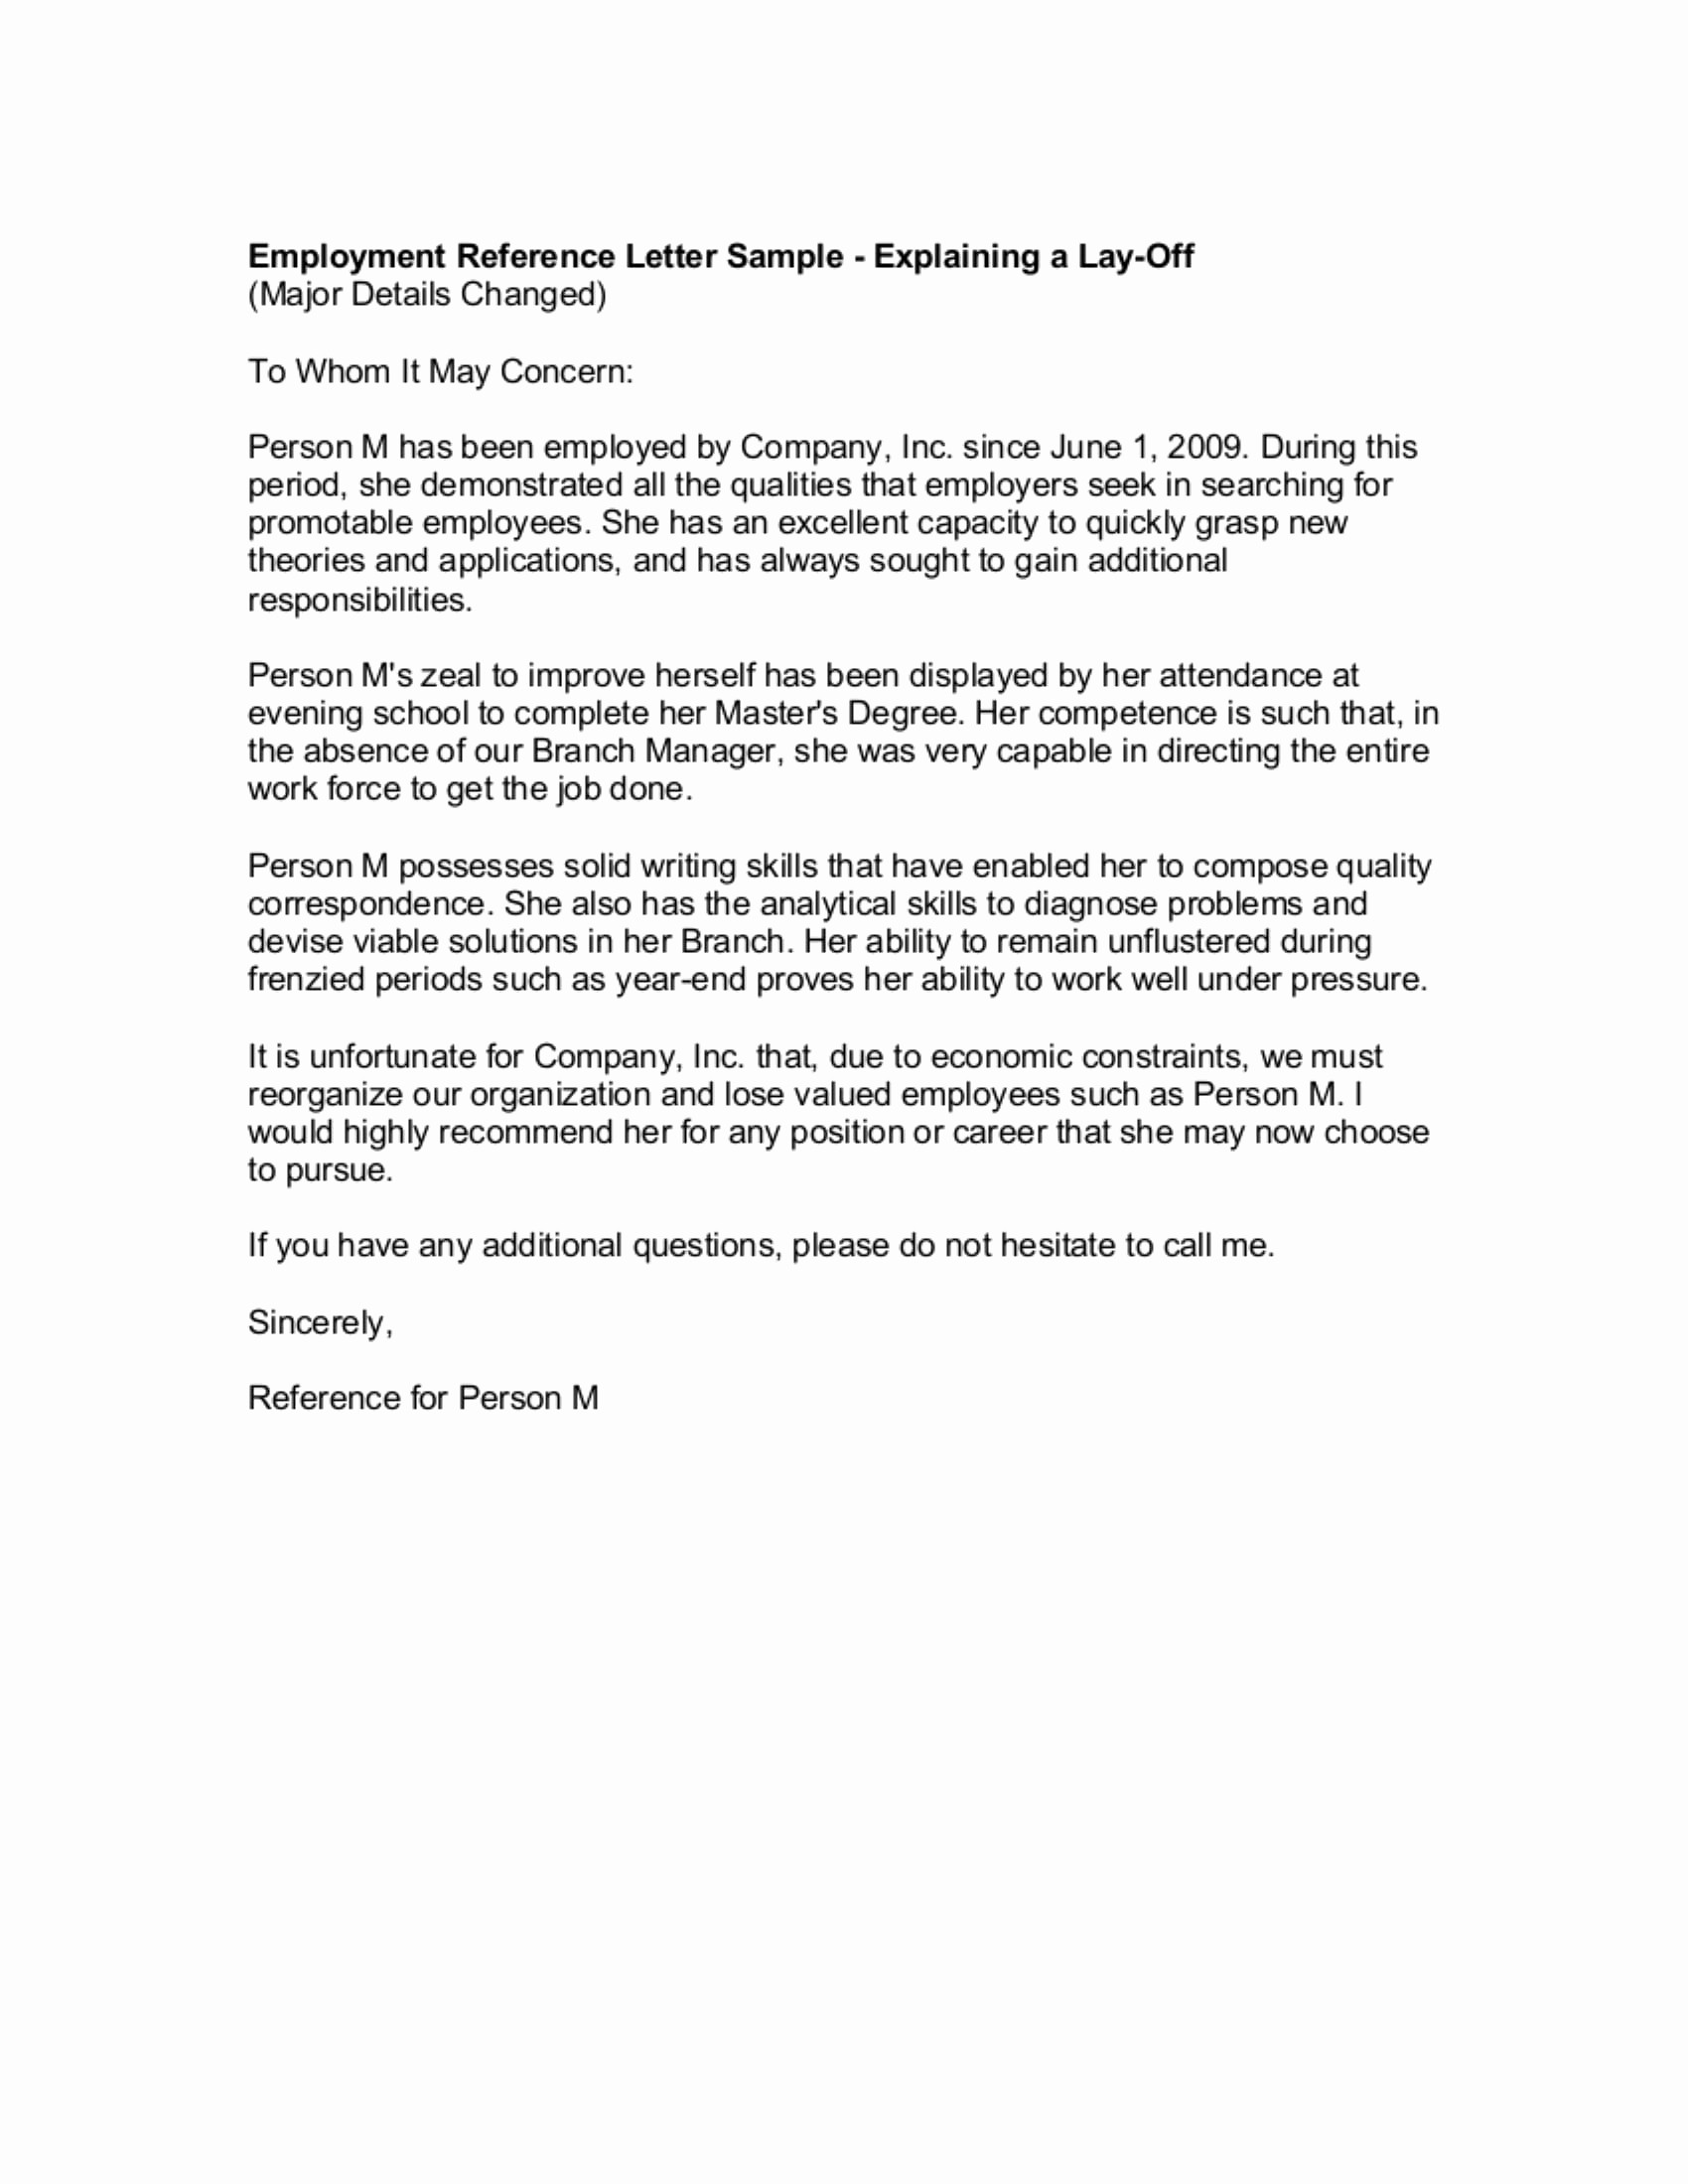 Letter Of Recomendation for Employment Fresh 9 Reference Letter From A Previous Employer Examples Pdf